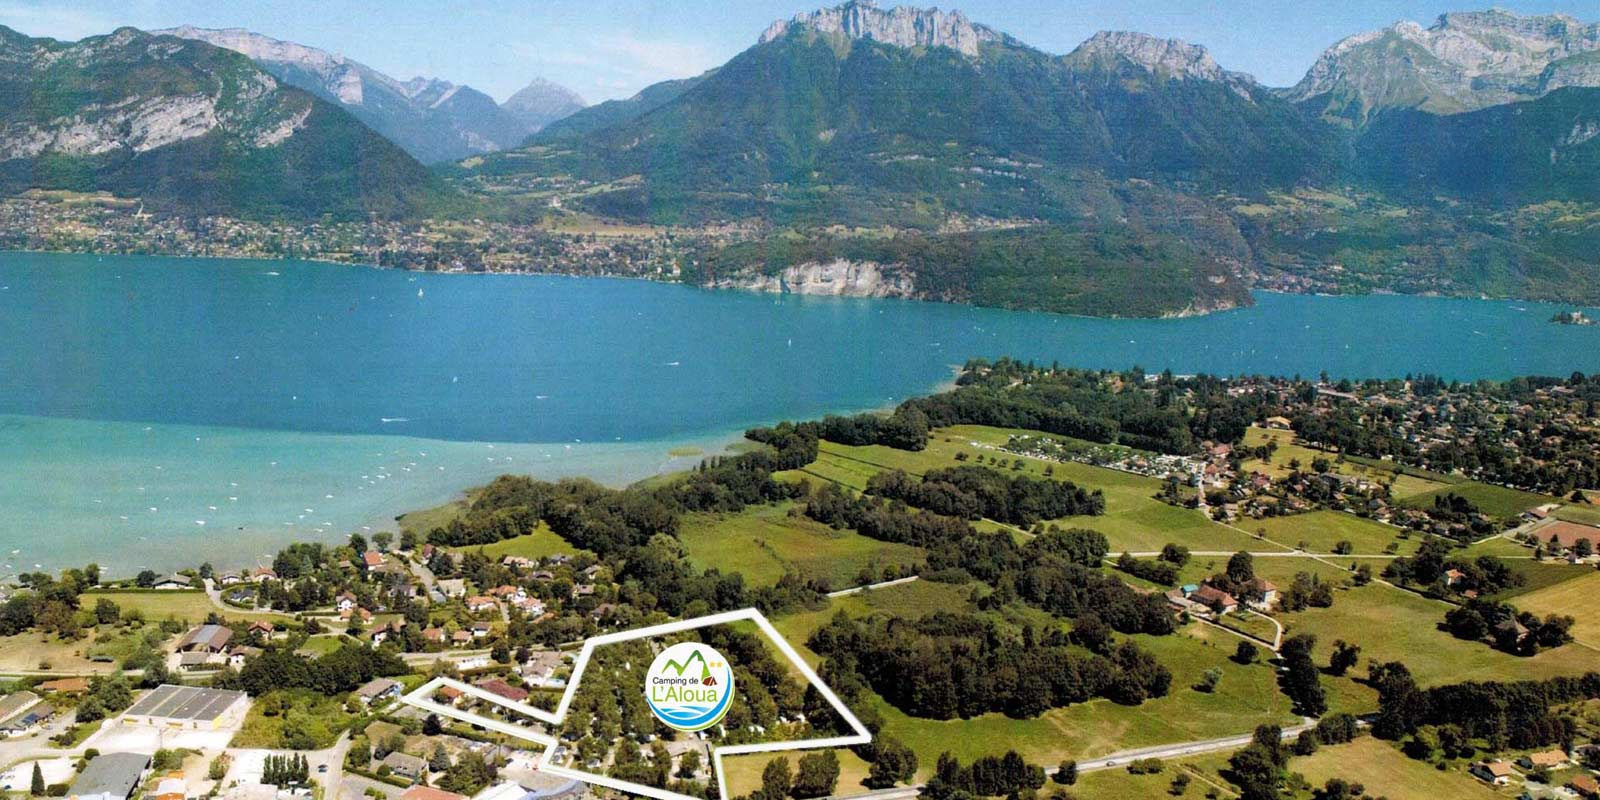 camping aloua annecy sevrier